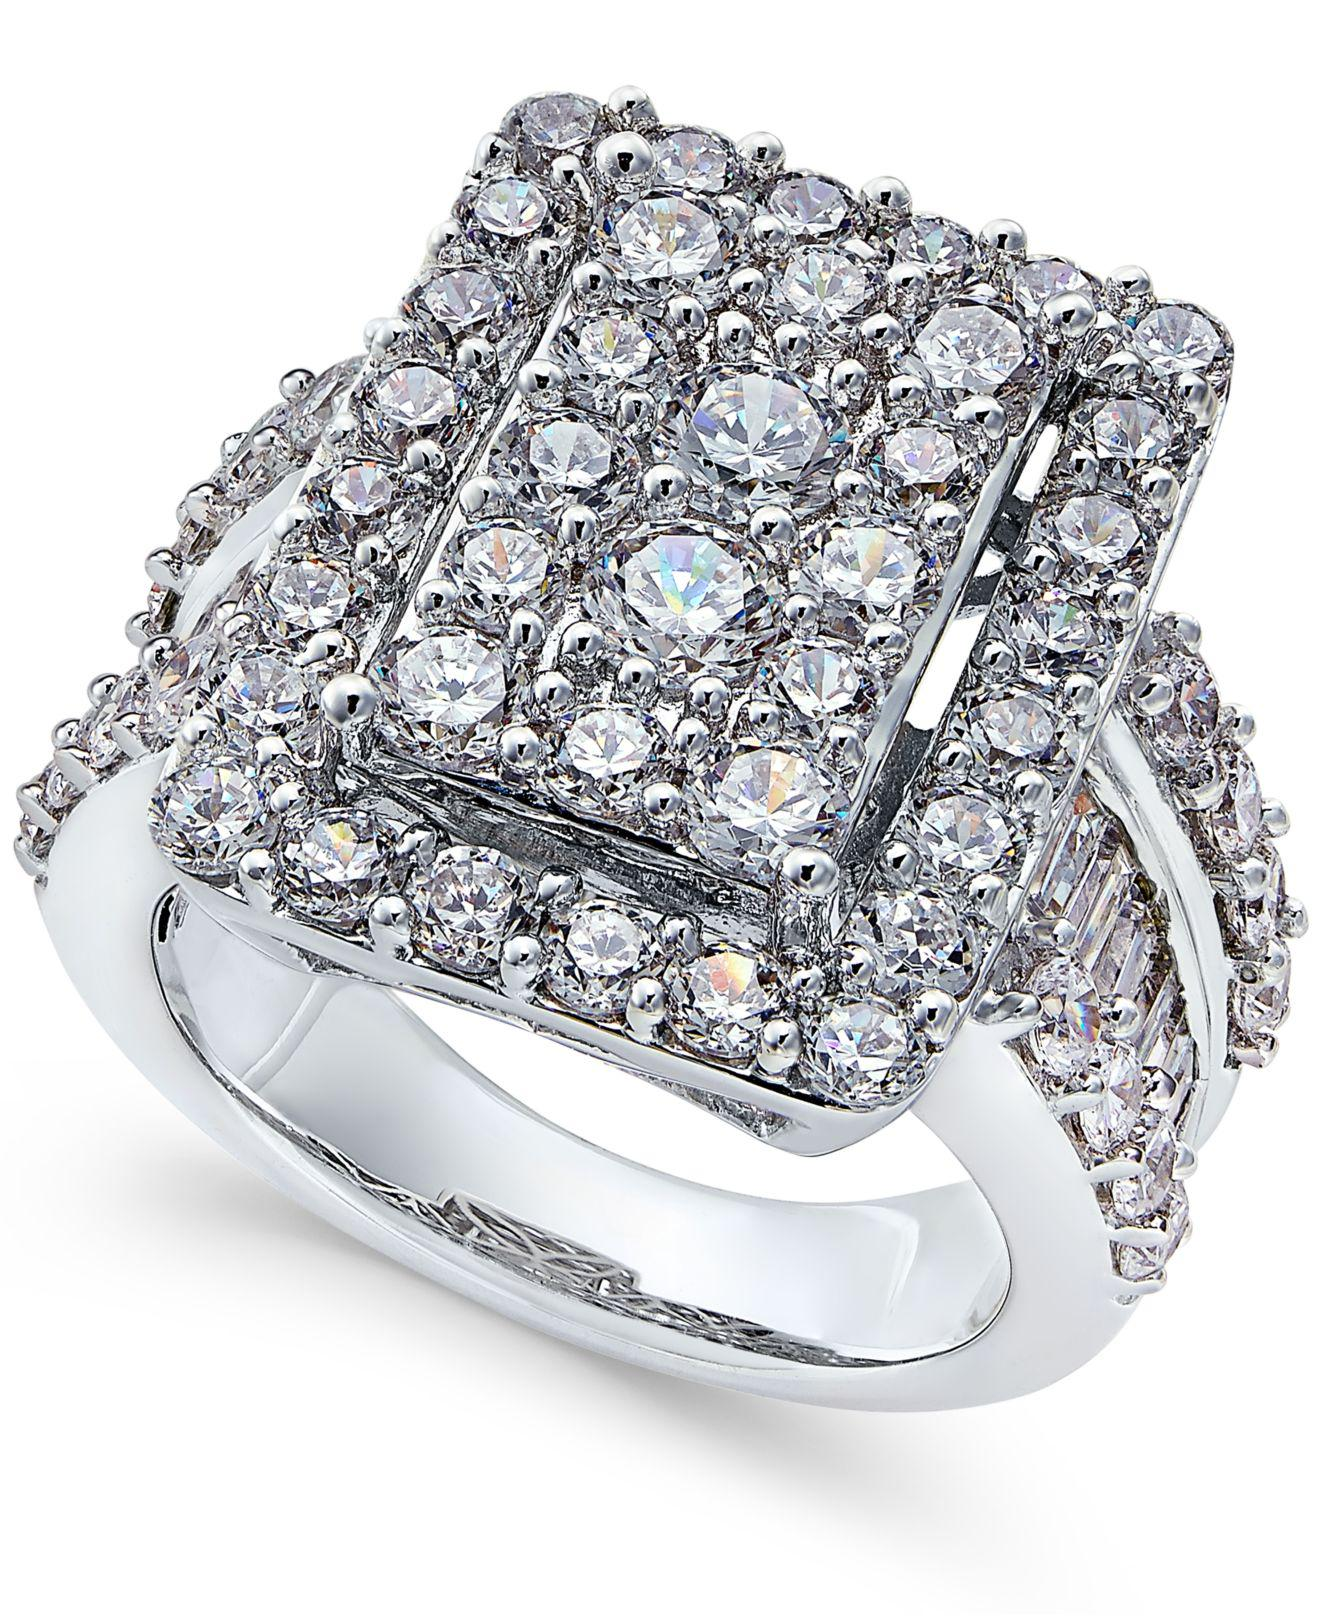 rings pinterest quad engagement wedding pin jewels ring diamond introducing stella